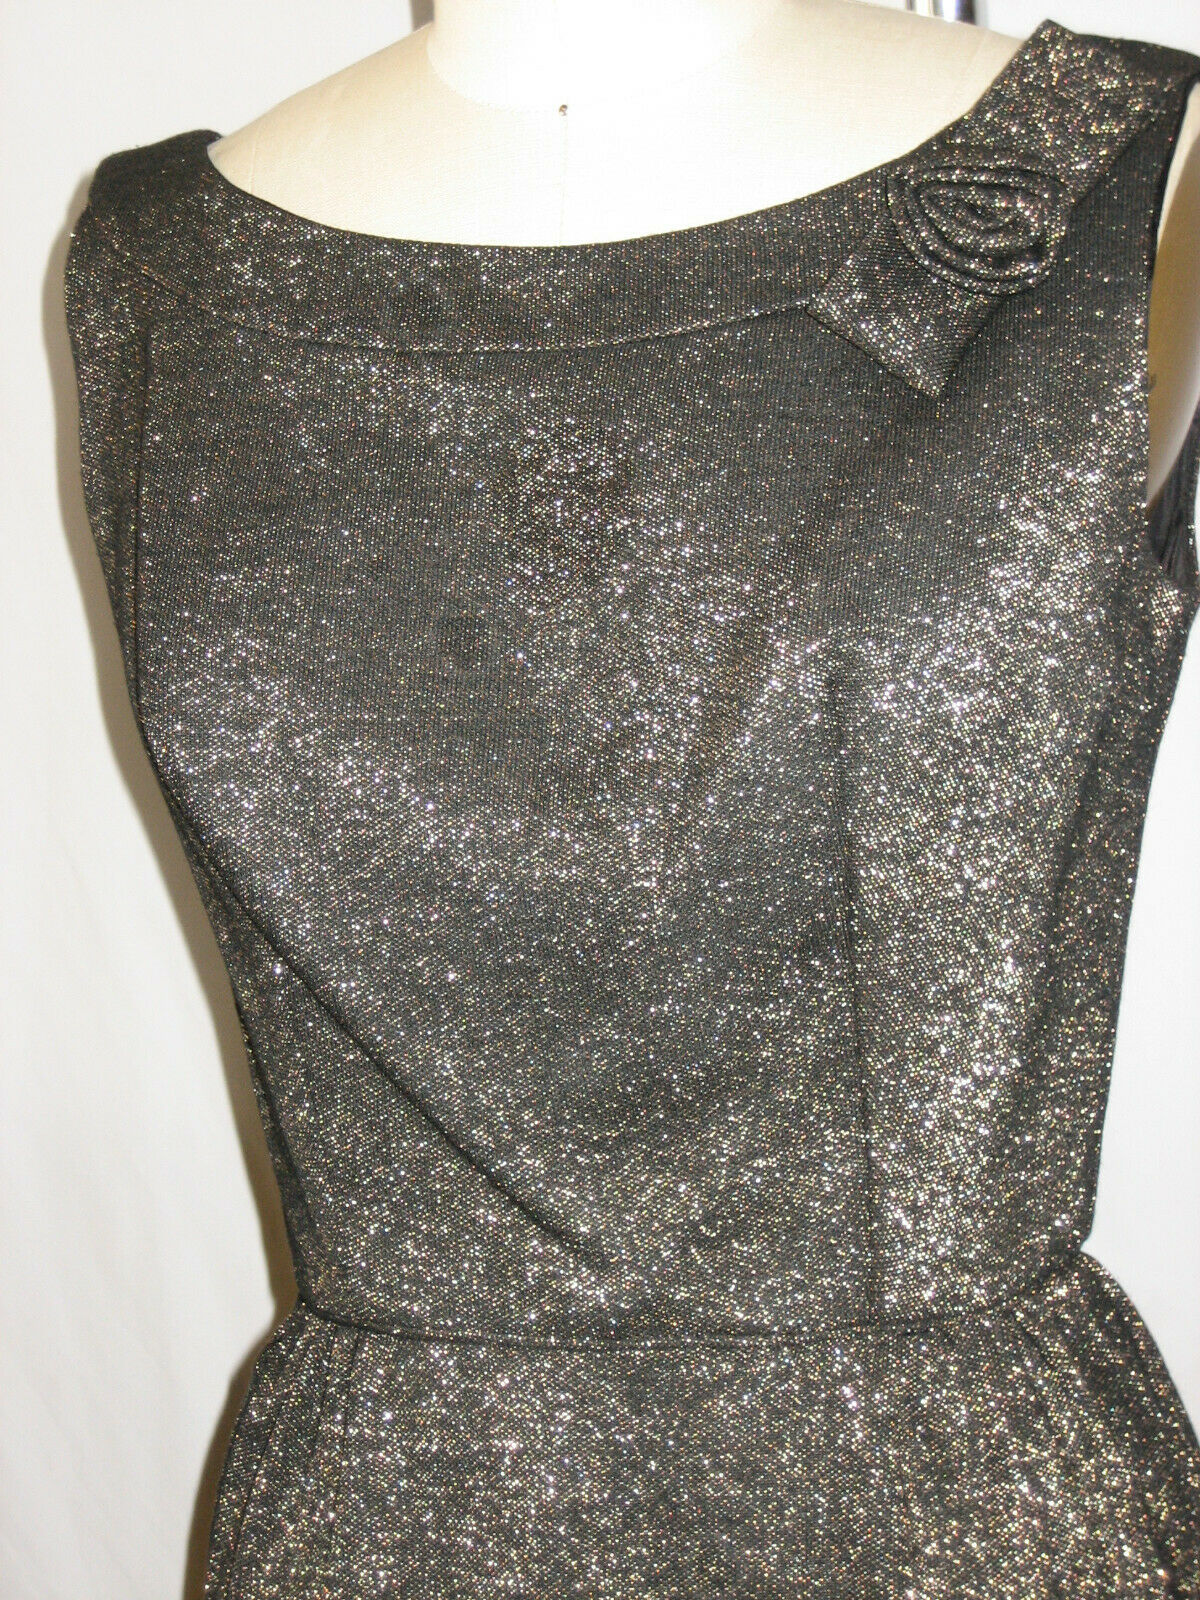 VTG 50s 60s Black Heavily Hand Beaded Long Evening Gown Dress Cocktail Glam XS